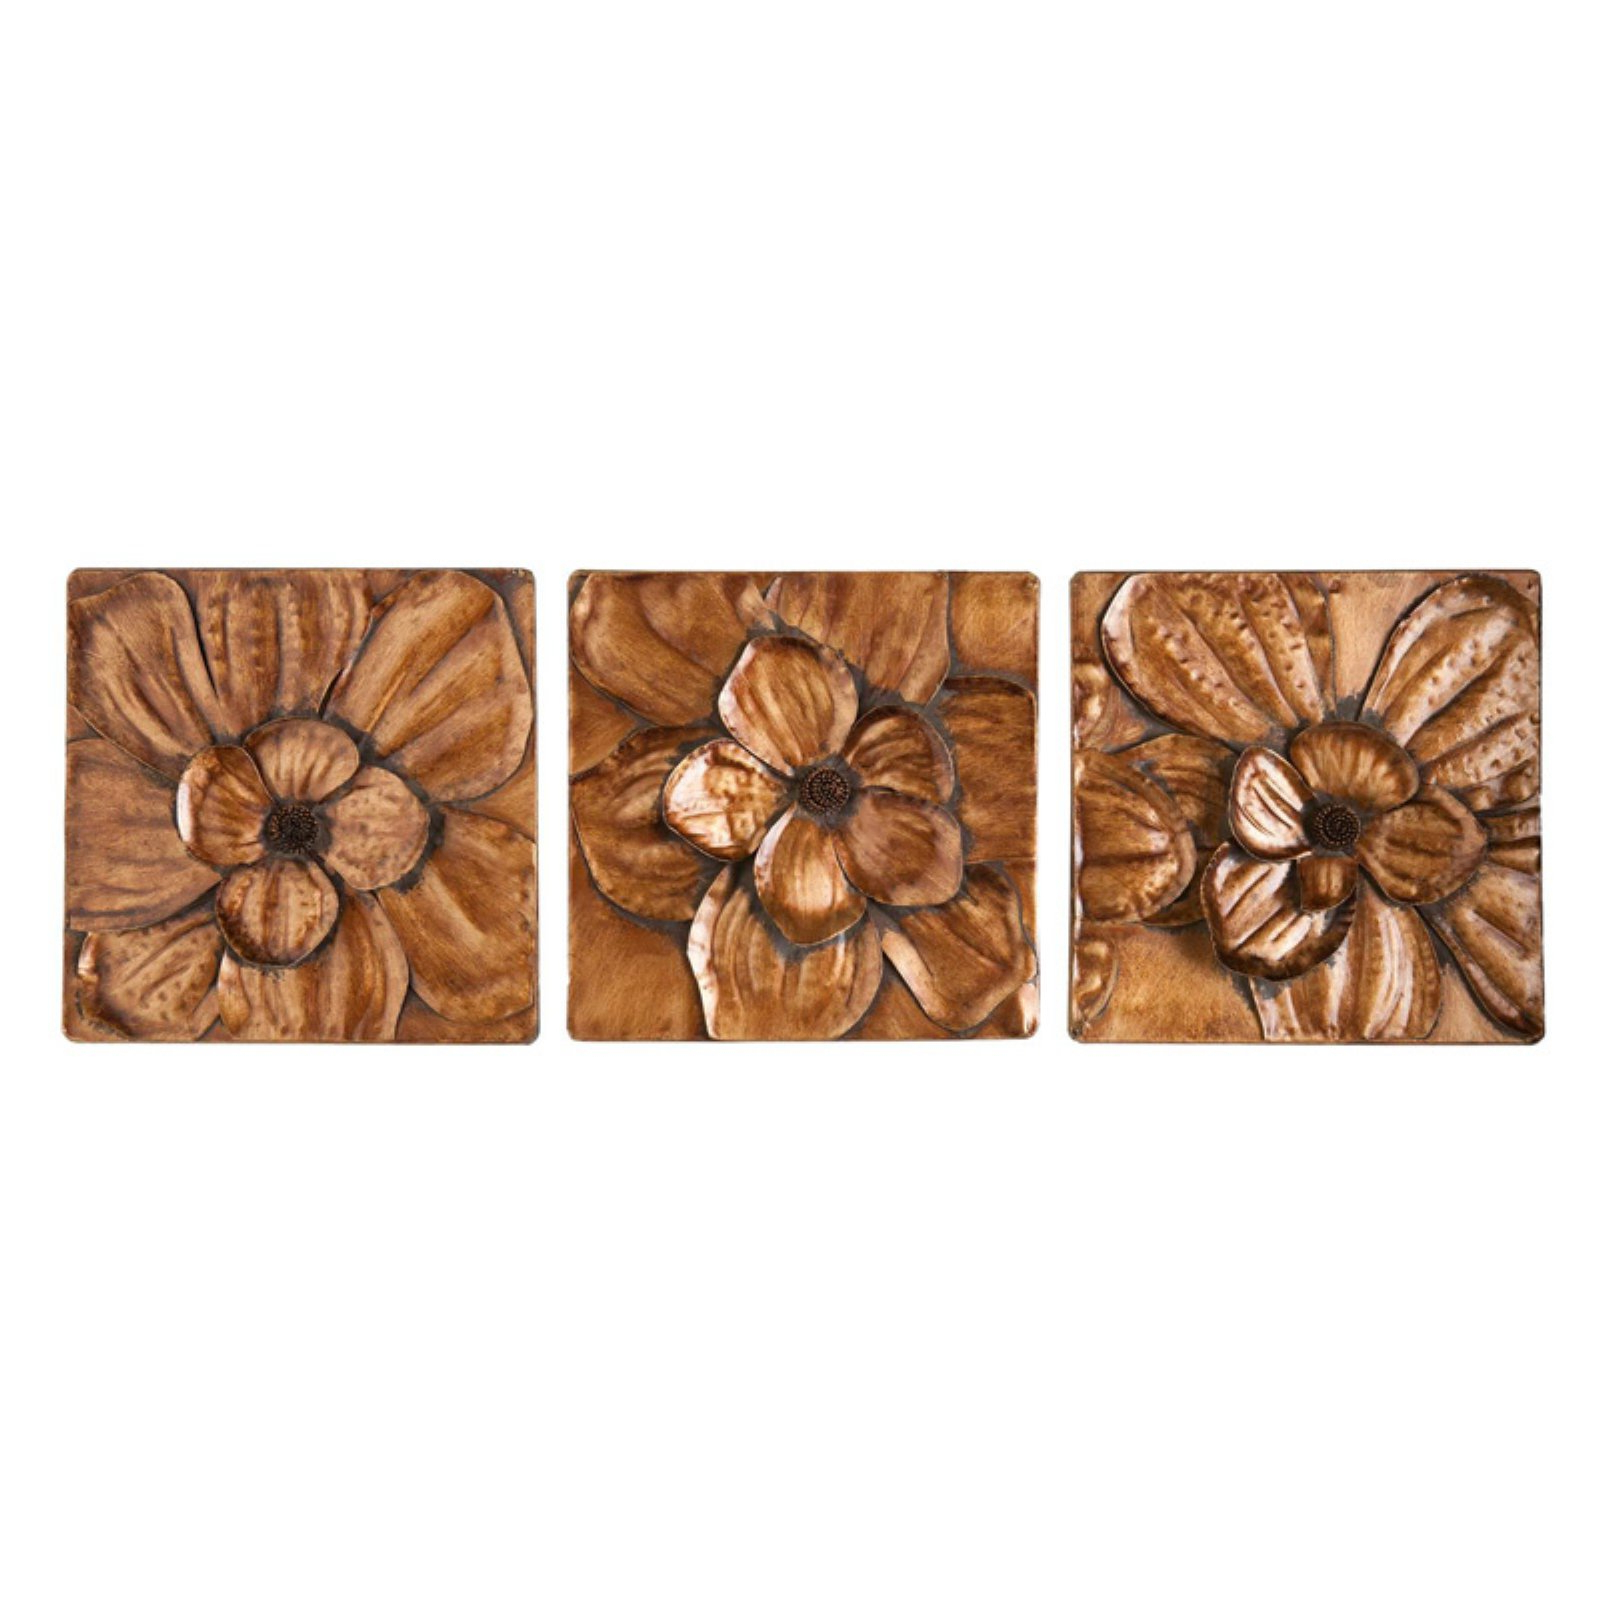 Well Liked 3 Piece Magnolia Brown Panel Wall Decor Sets Within Southern Enterprises Magnolia 3 Piece Wall Panel Set – Walmart (Gallery 3 of 20)